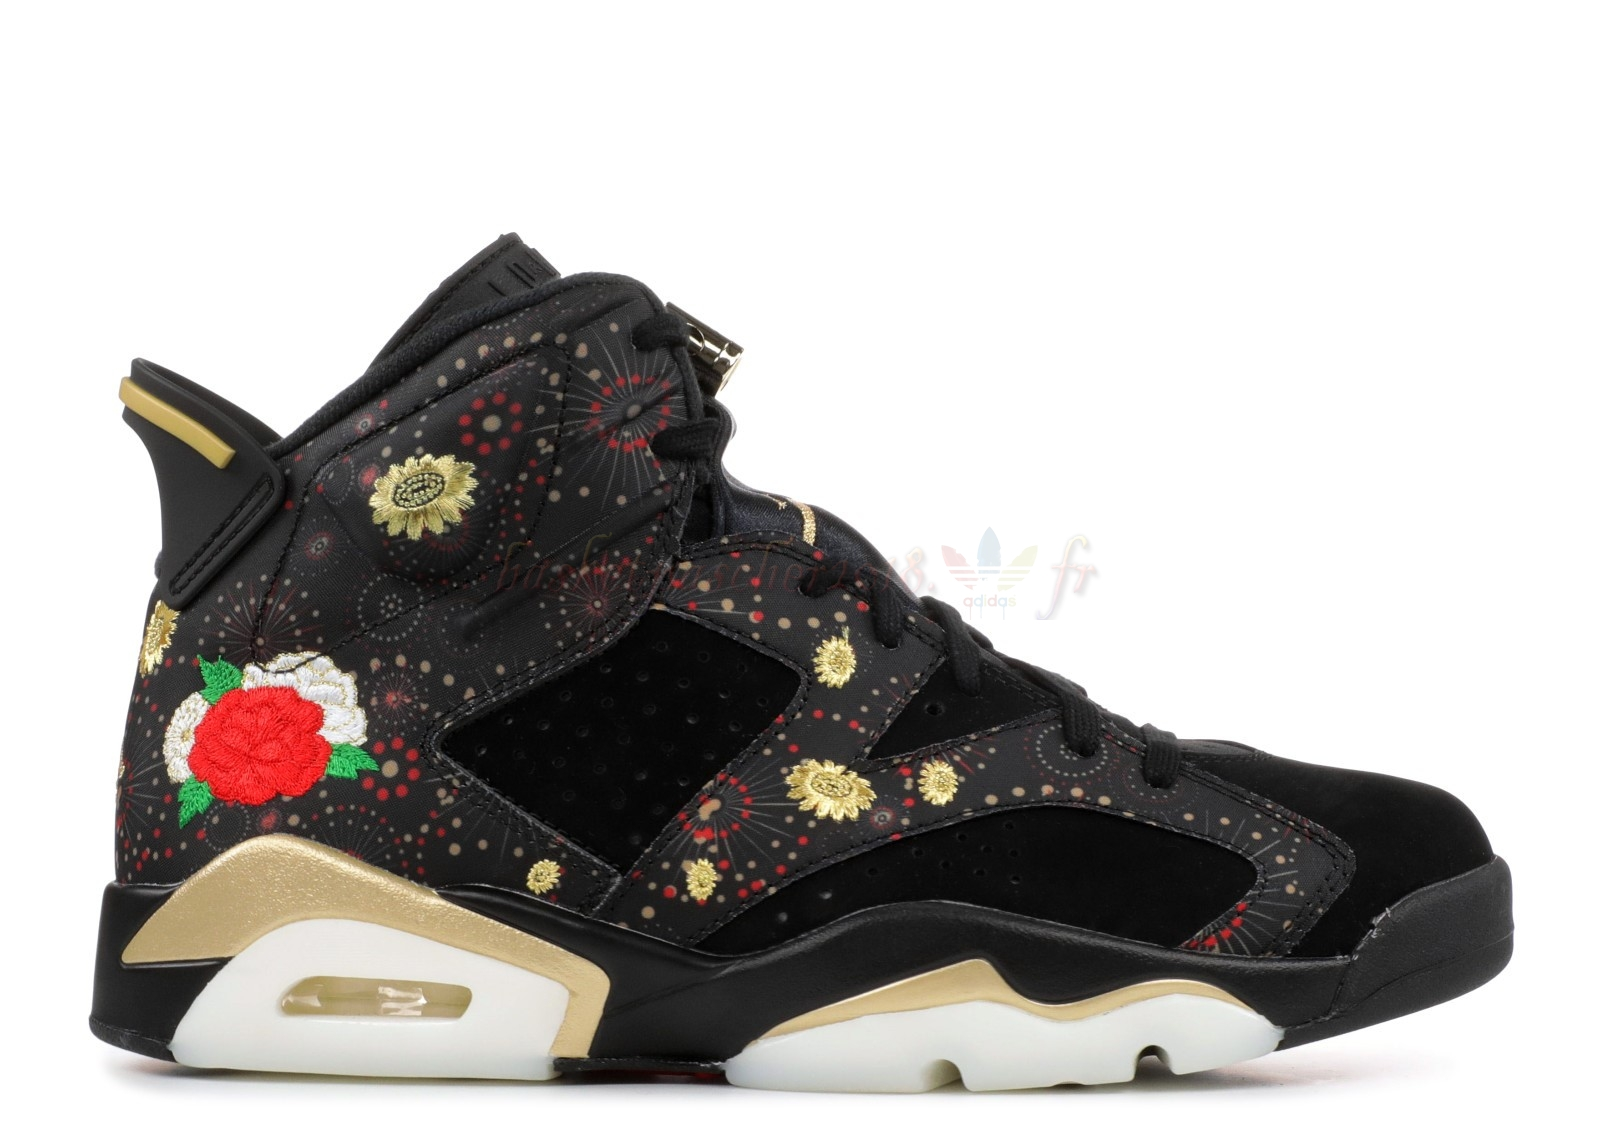 new product 5eb73 169cd Vente Chaude Chaussures De Basketball Homme Air Jordan 6 Retro Cny